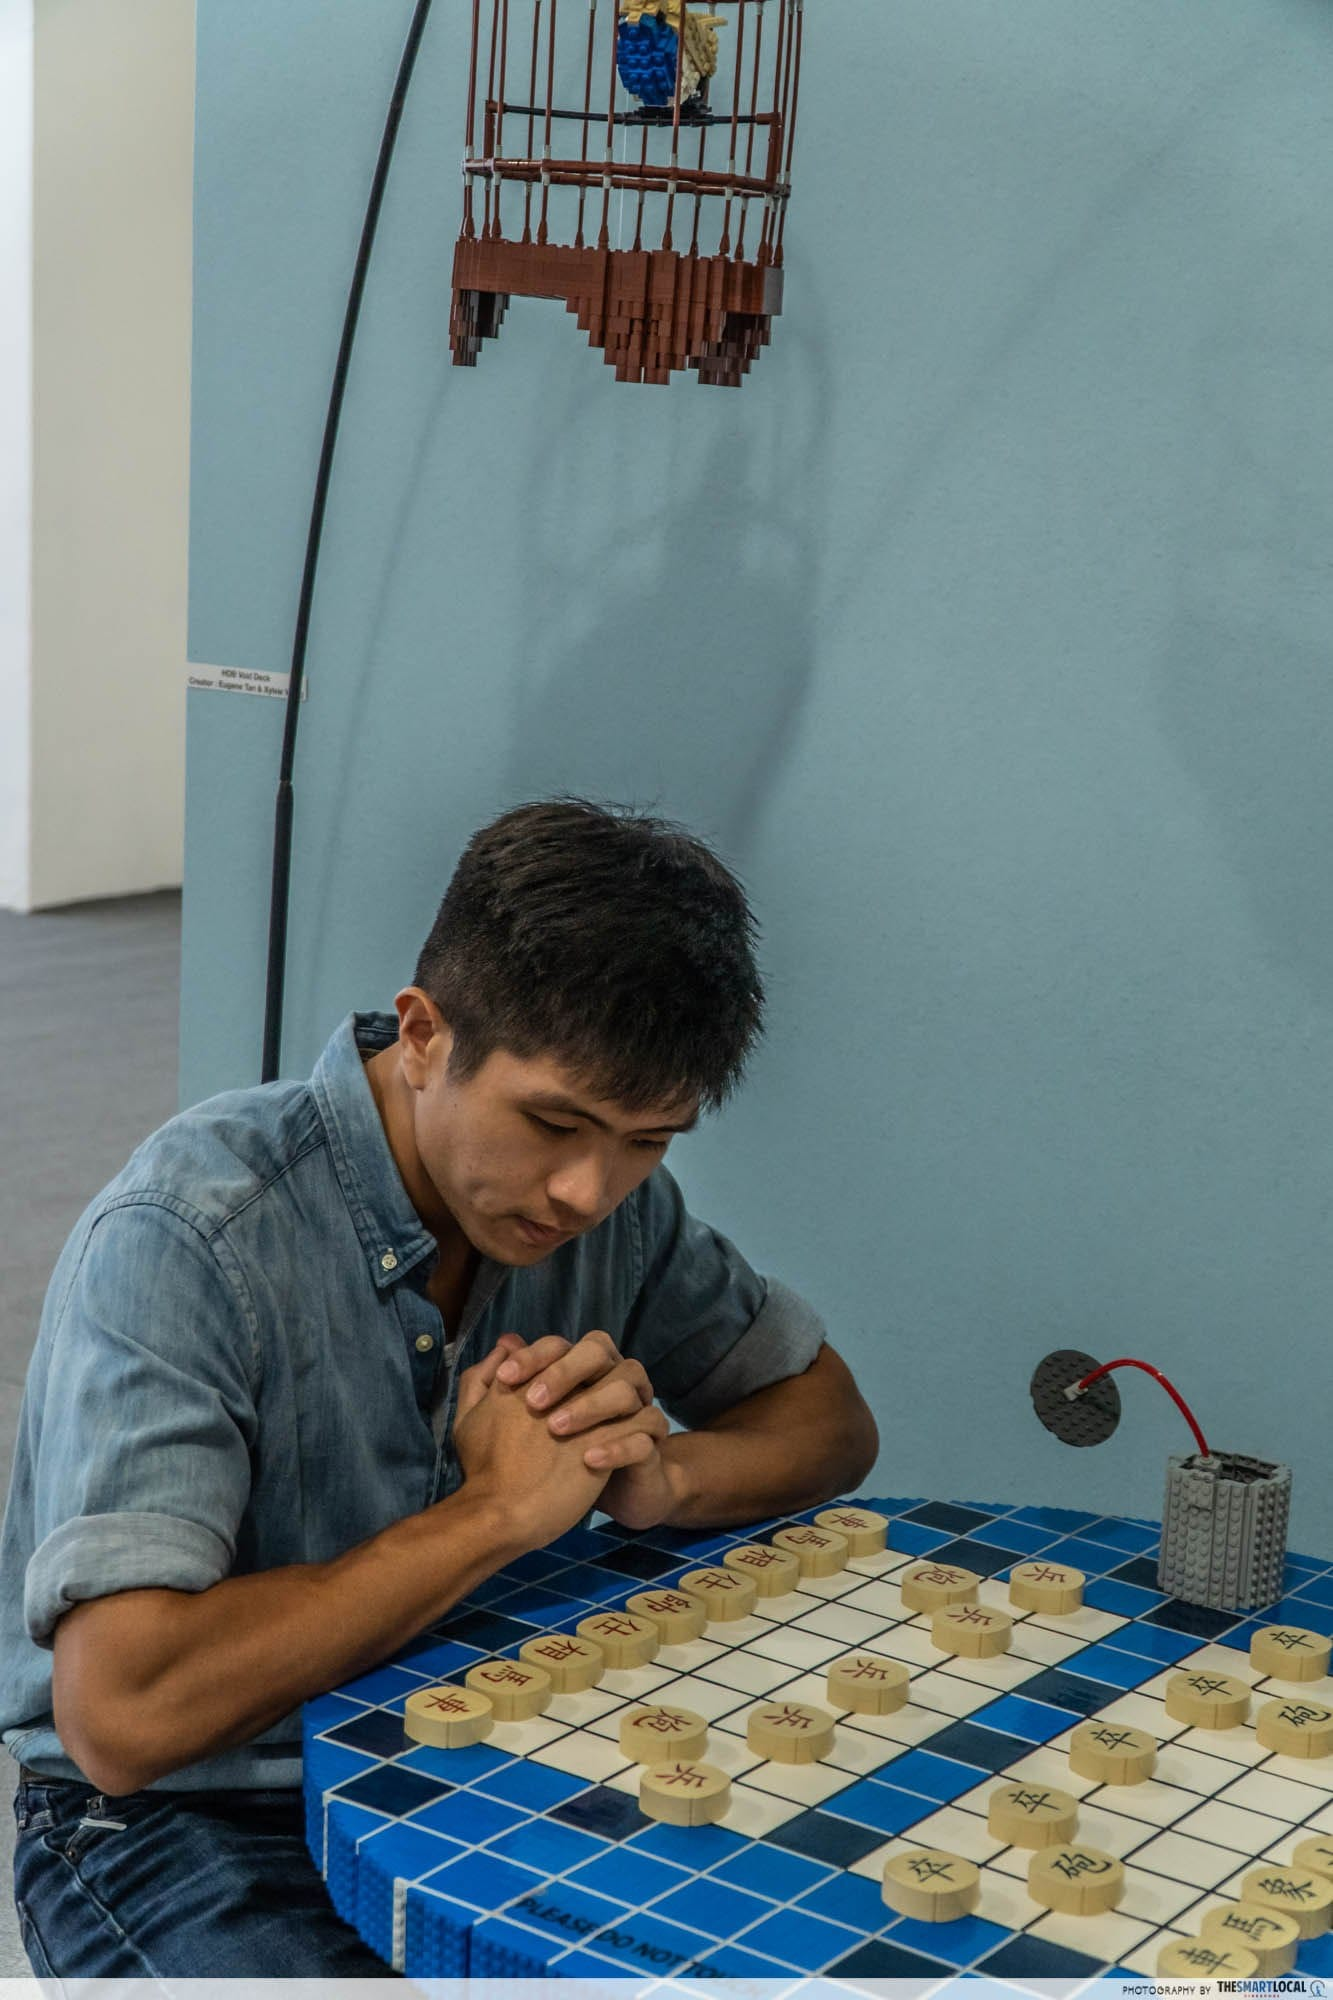 lego chinese chess pensive